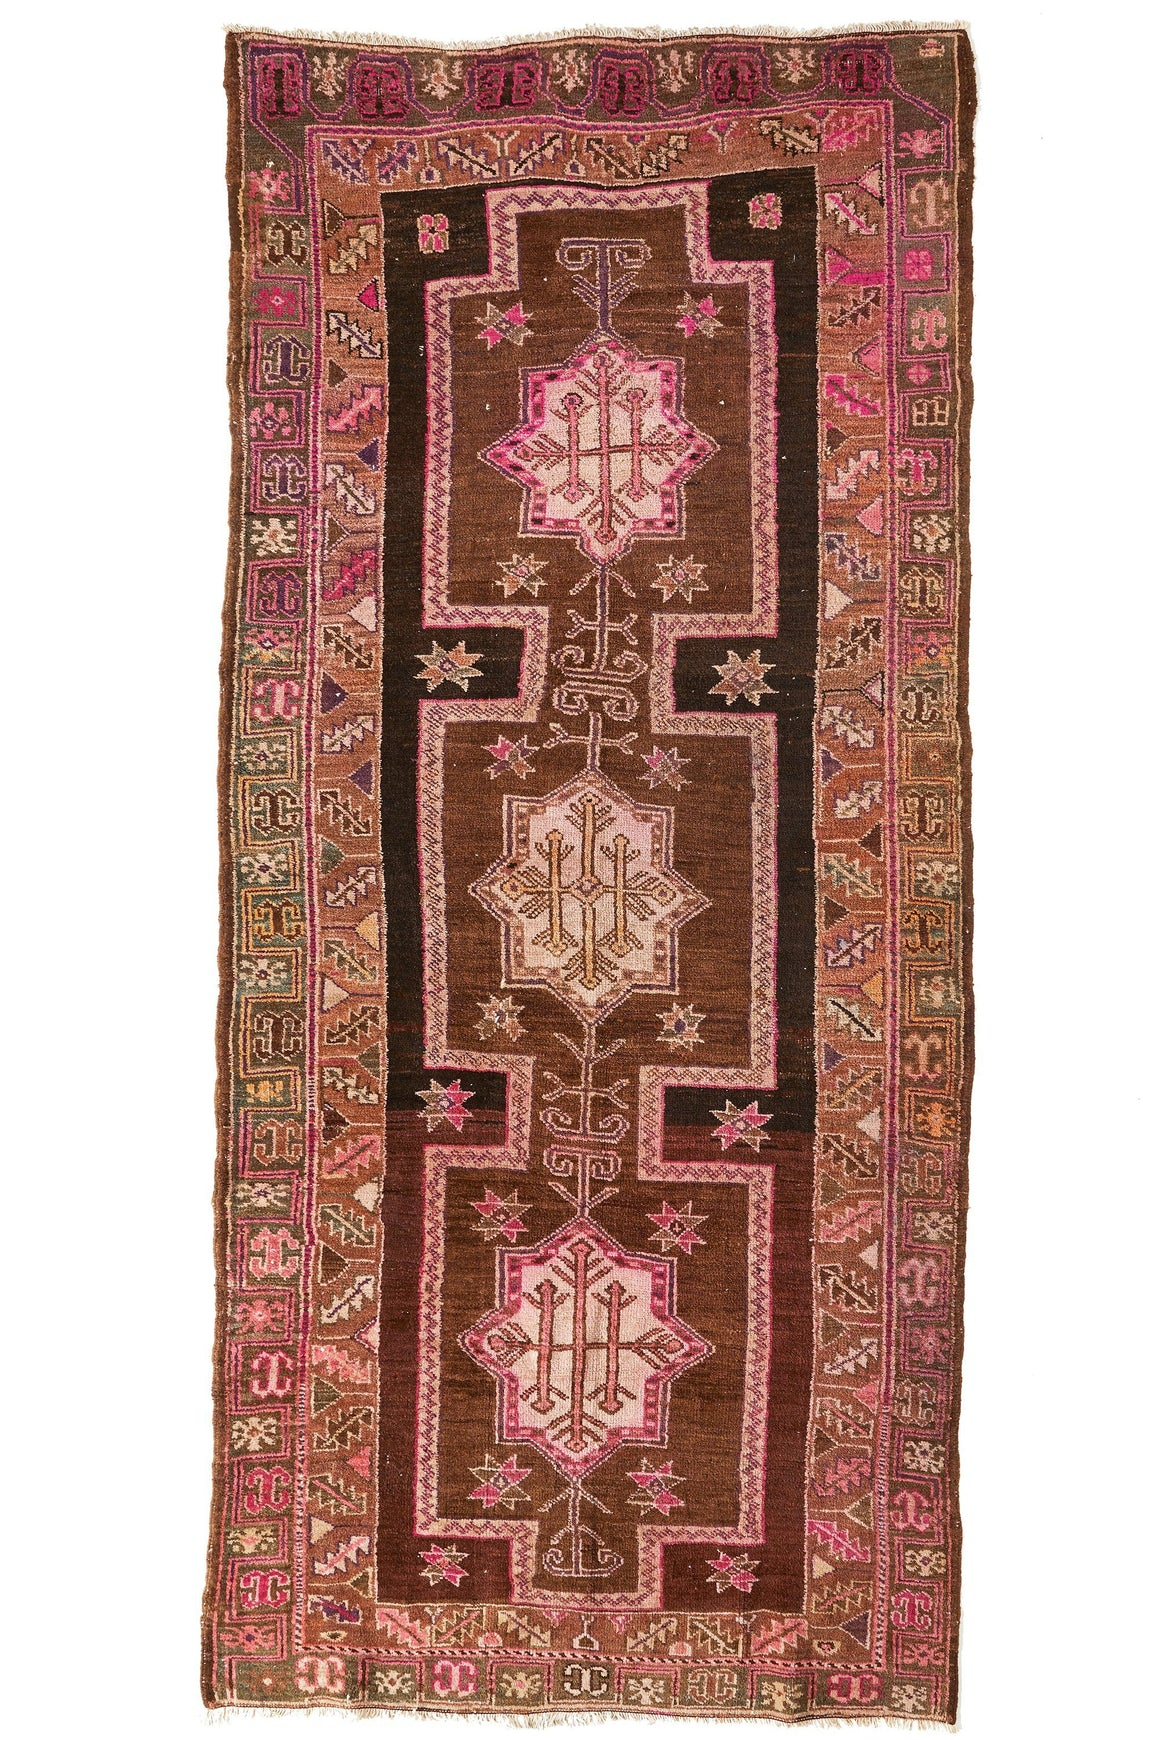 'Aurora' Turkish Vintage Extra Large Area Rug - 5'4'' x 11'11'' - Canary Lane - Curated Textiles